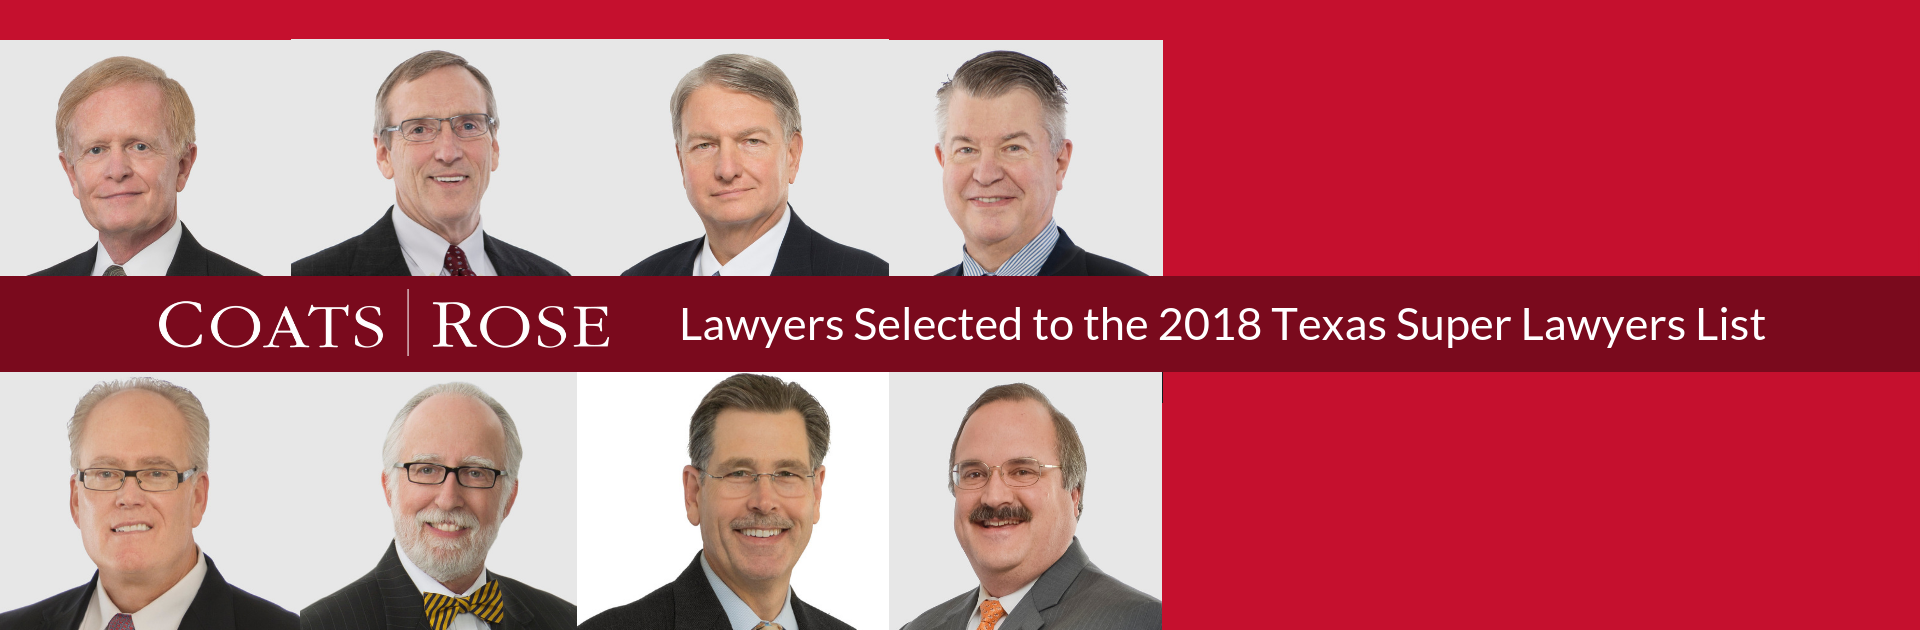 Eight Coats Rose Attorneys Named to 2018 Texas Super Lawyers List